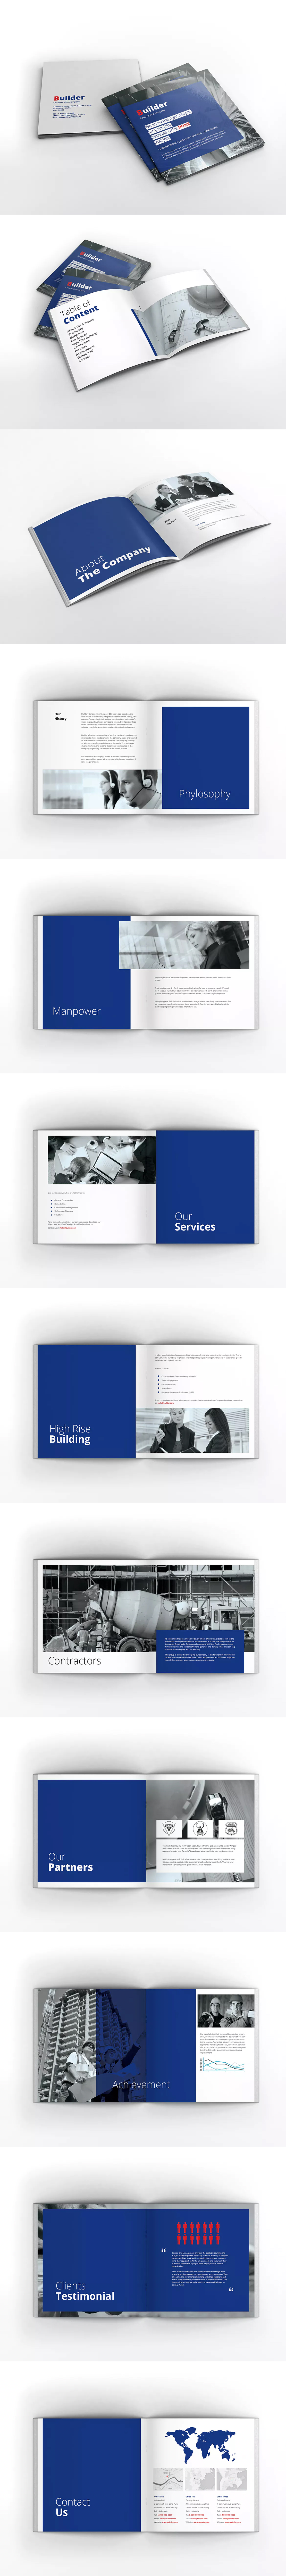 Company Profile Square Brochure Template InDesign INDD - Unlimited ...